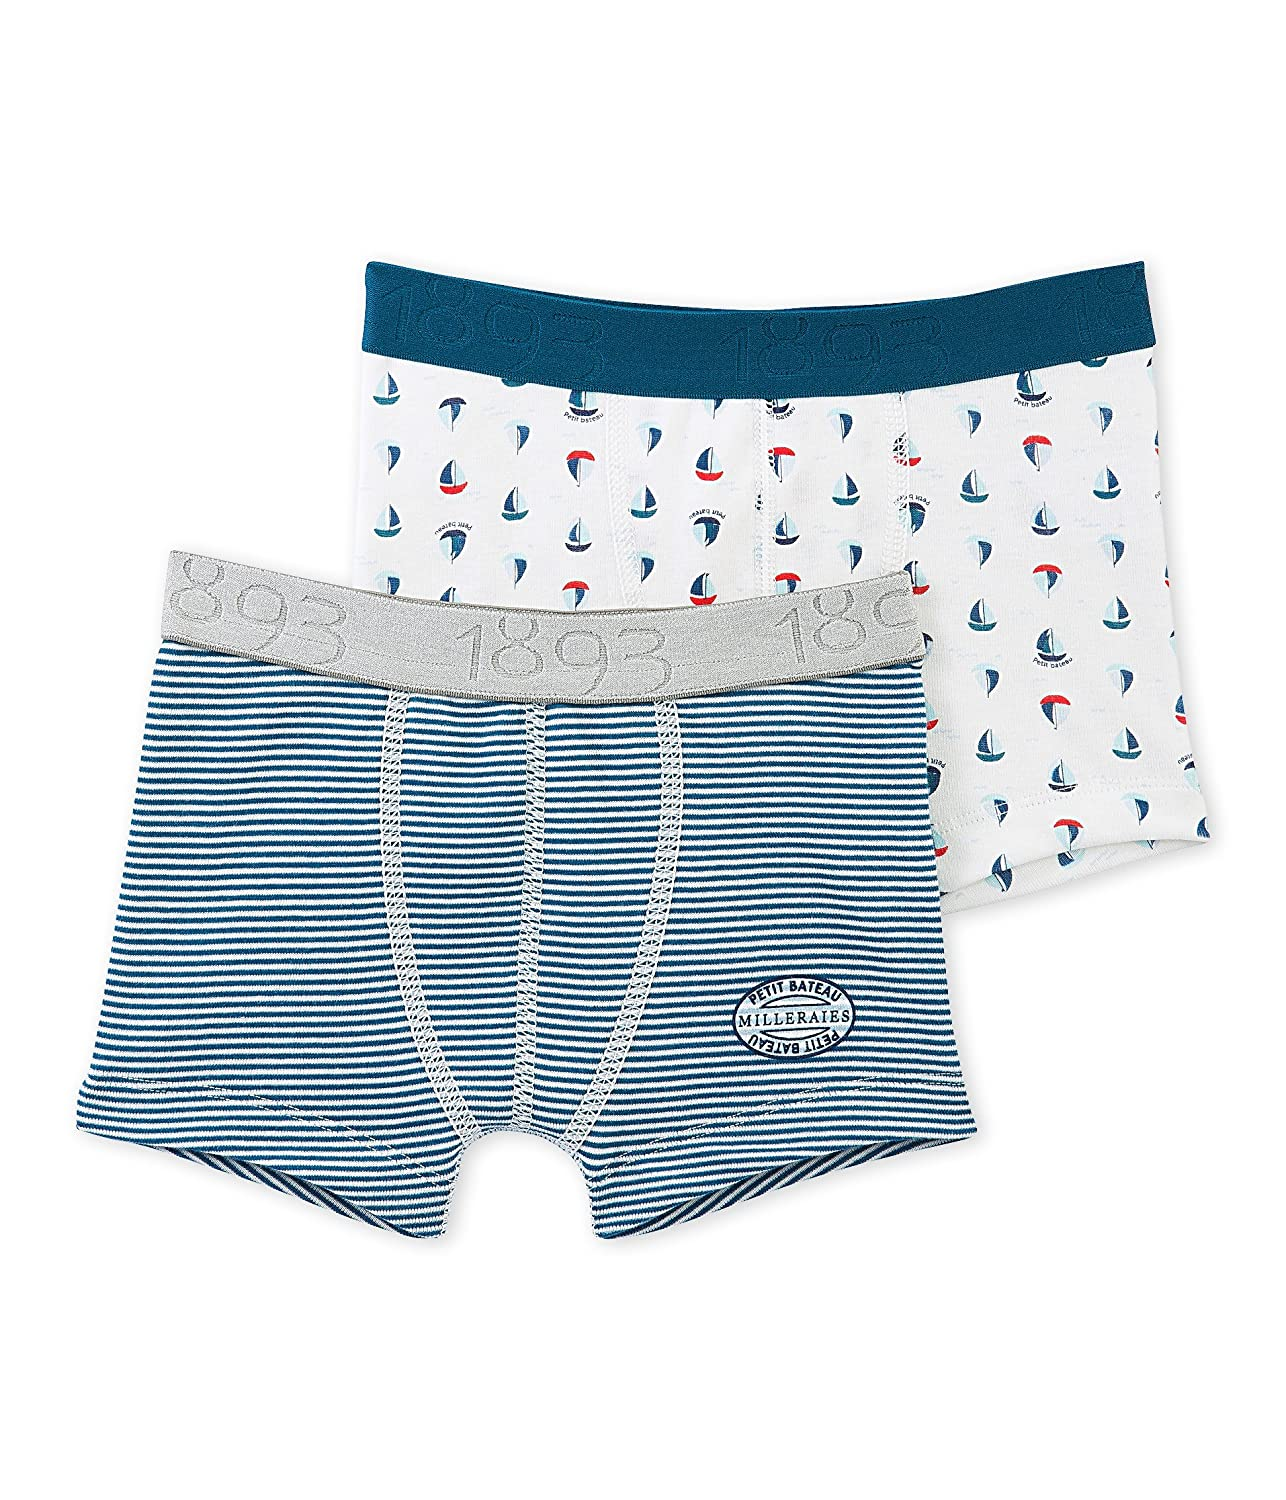 3a0a707174 Toddler Kids Petit Bateau Printed Swim Shorts Multicolor-4 Years